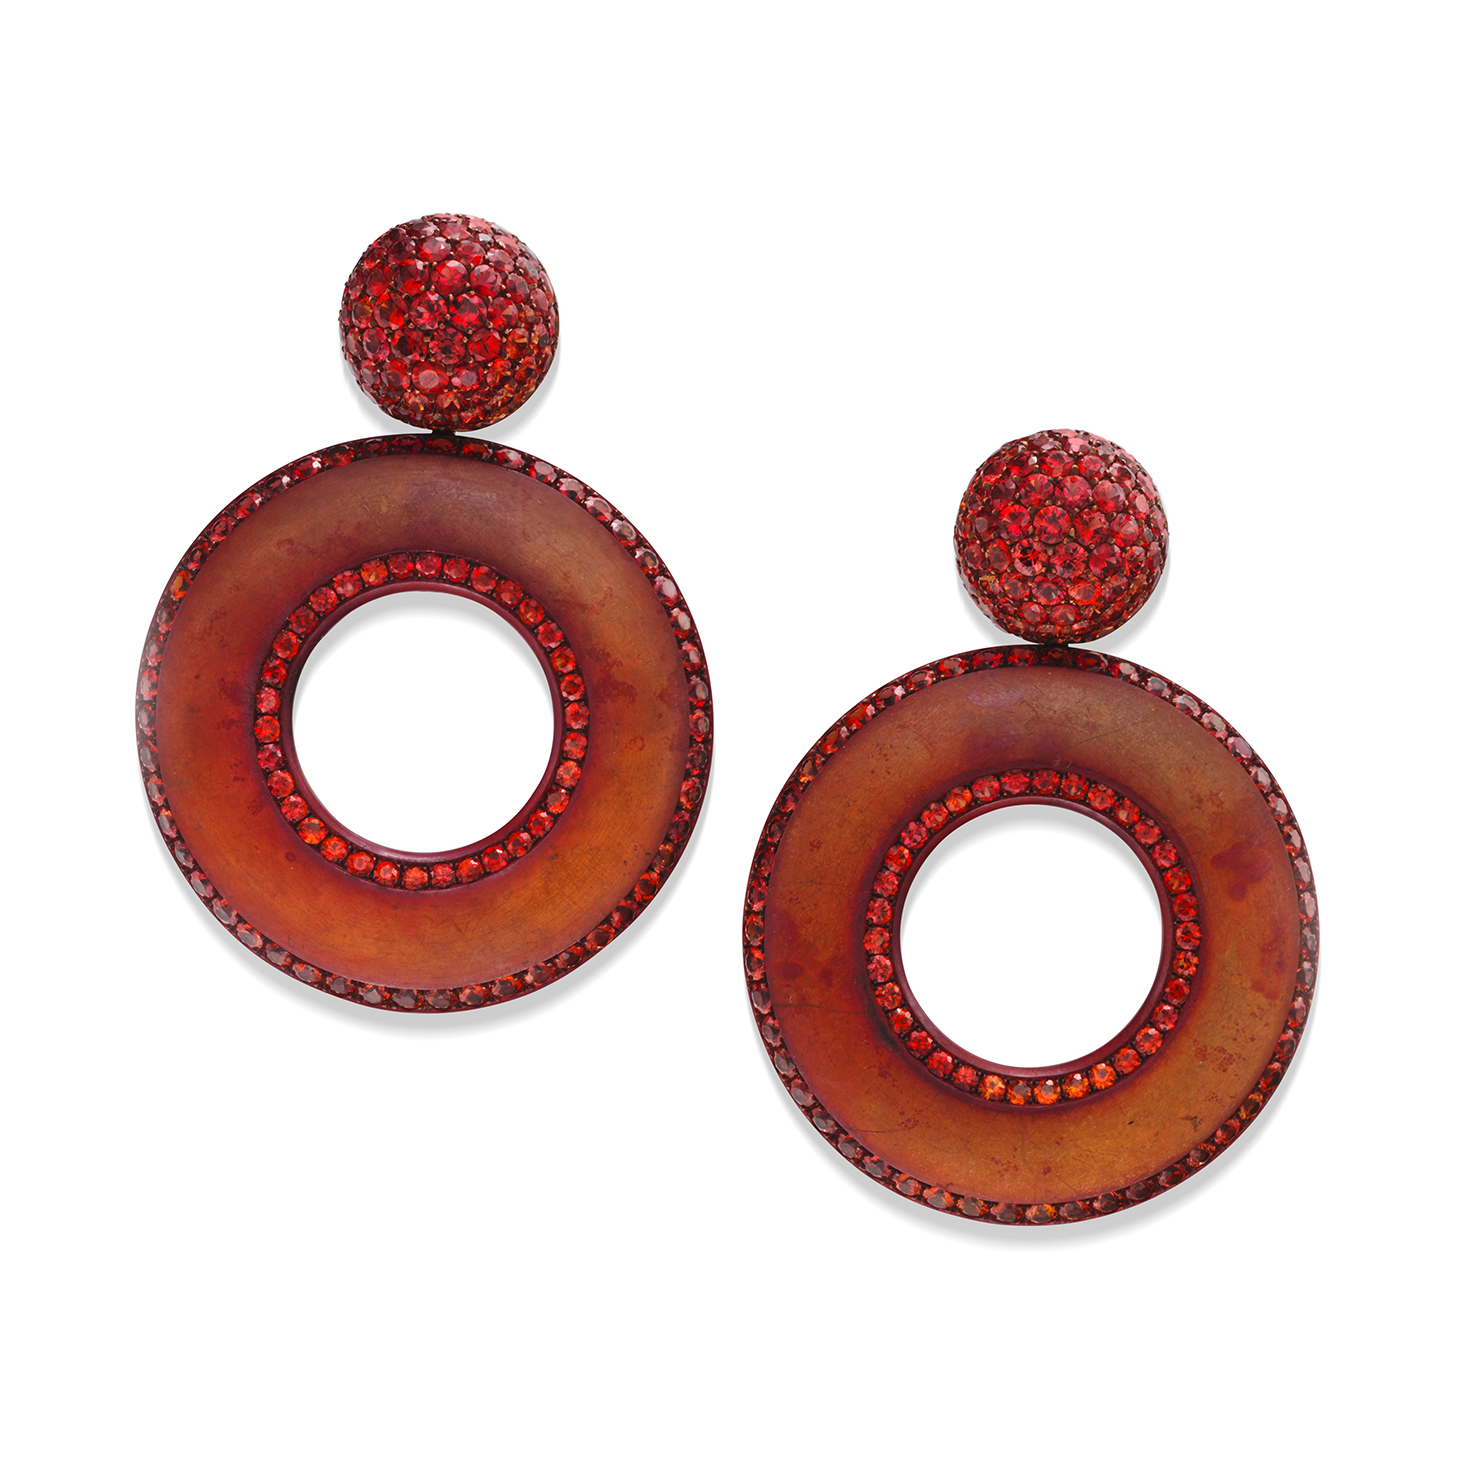 A Pair of Sapphire and Copper Ear Clips, by Hemmerle